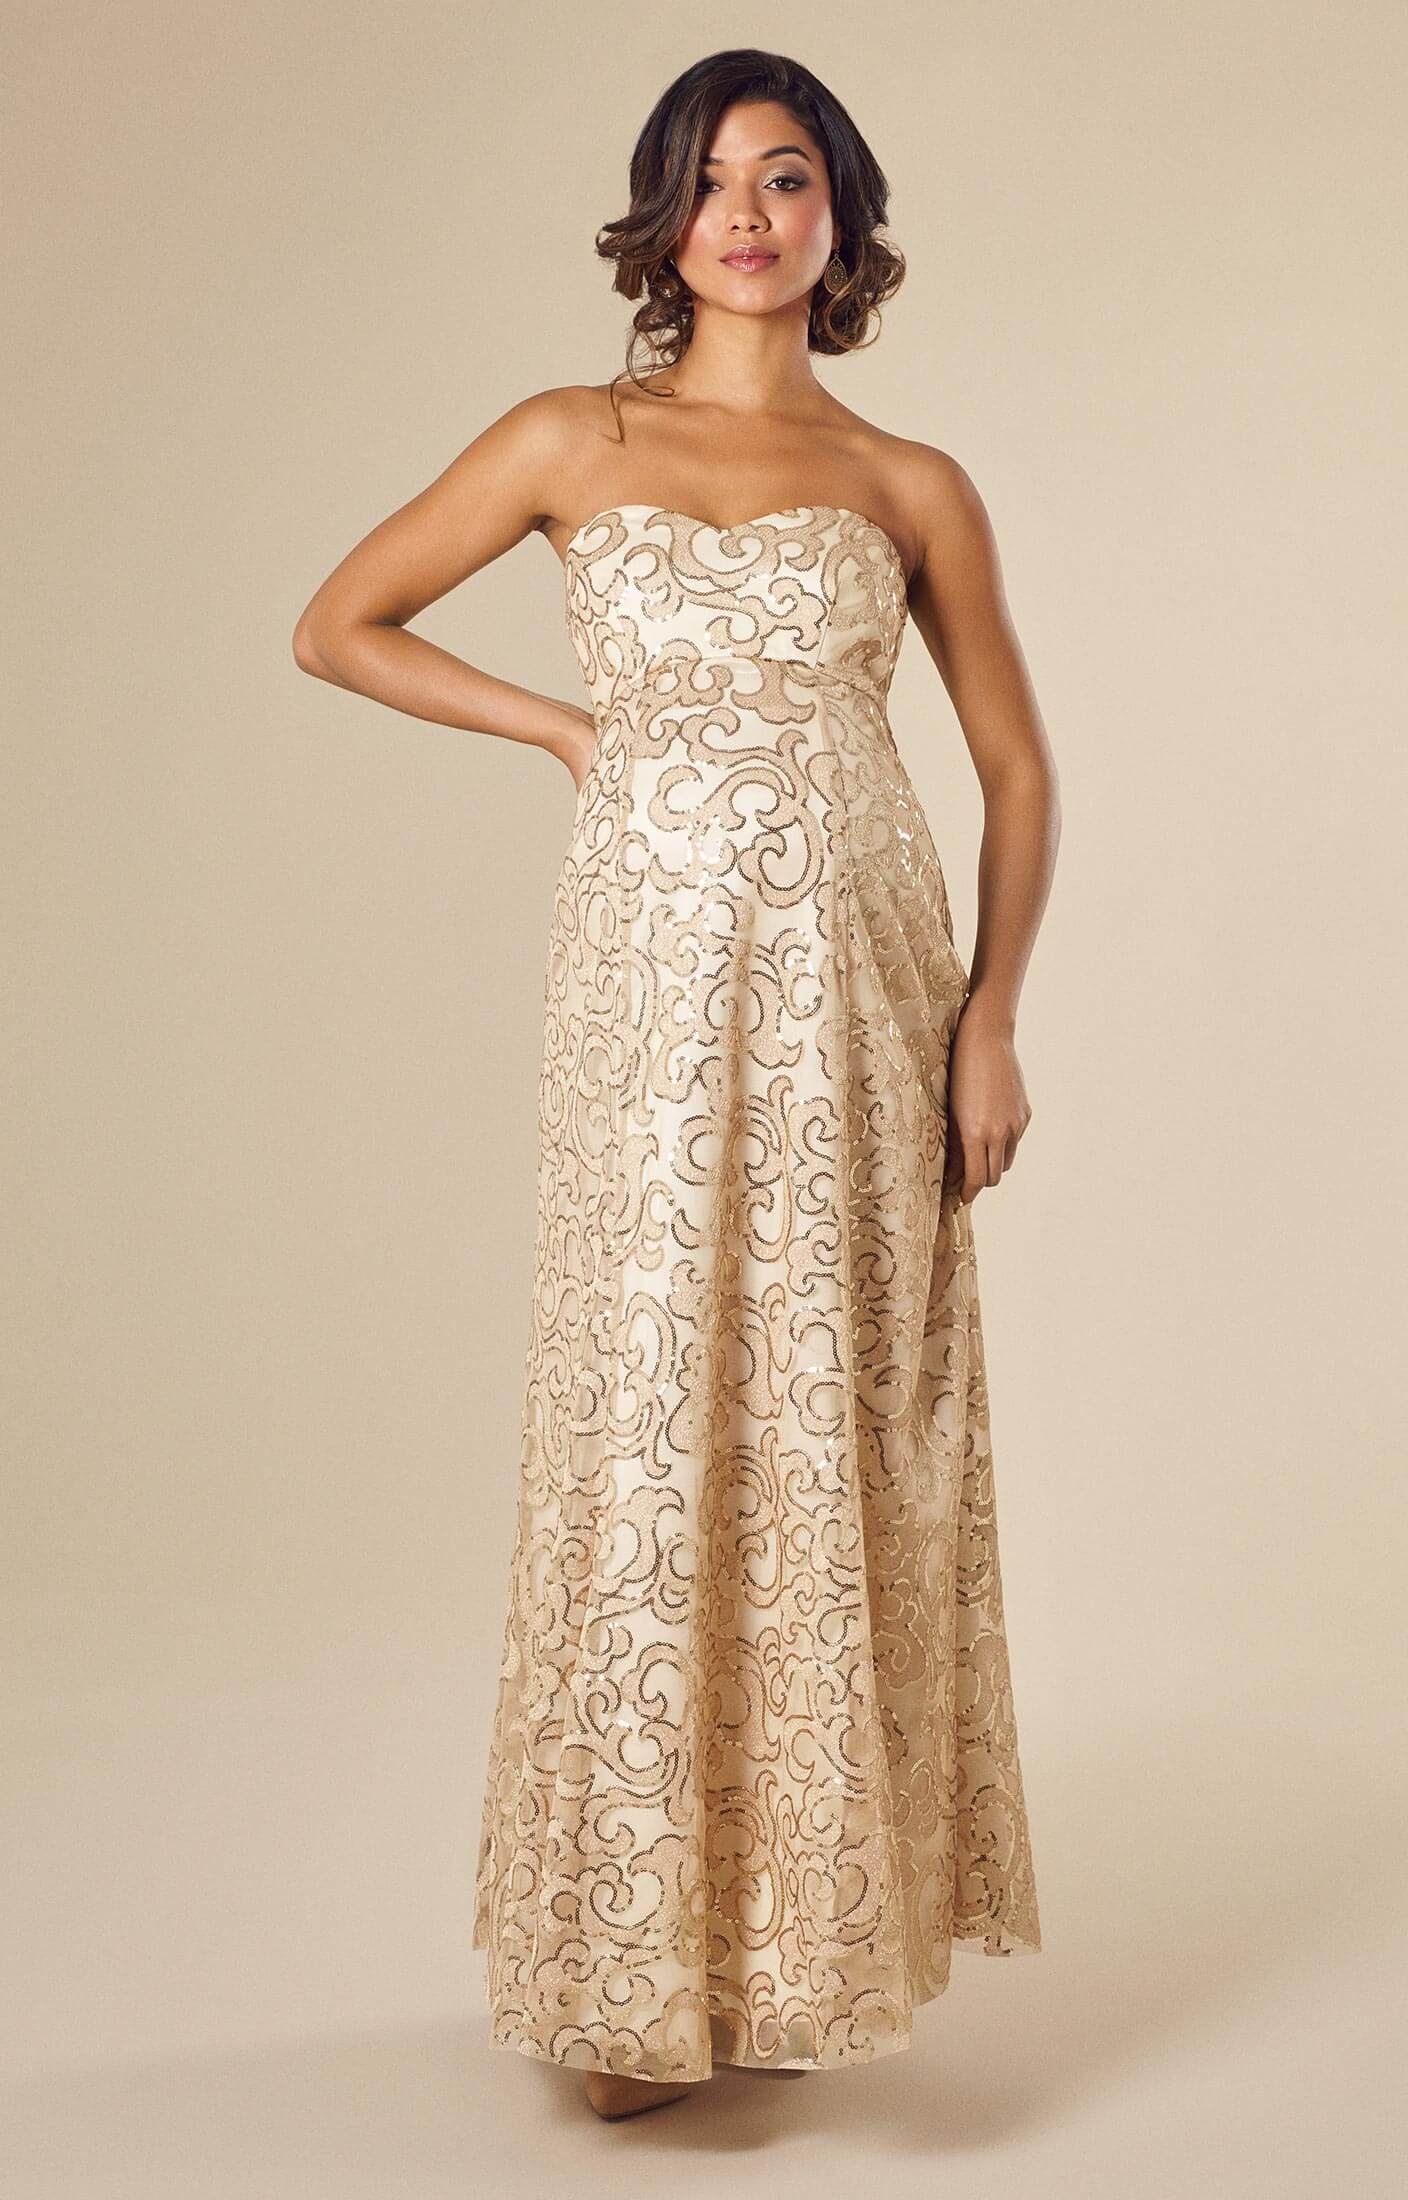 Red carpet maternity dresses and maternity evening wear by tiffany olivia gown long champagne shimmer ombrellifo Image collections